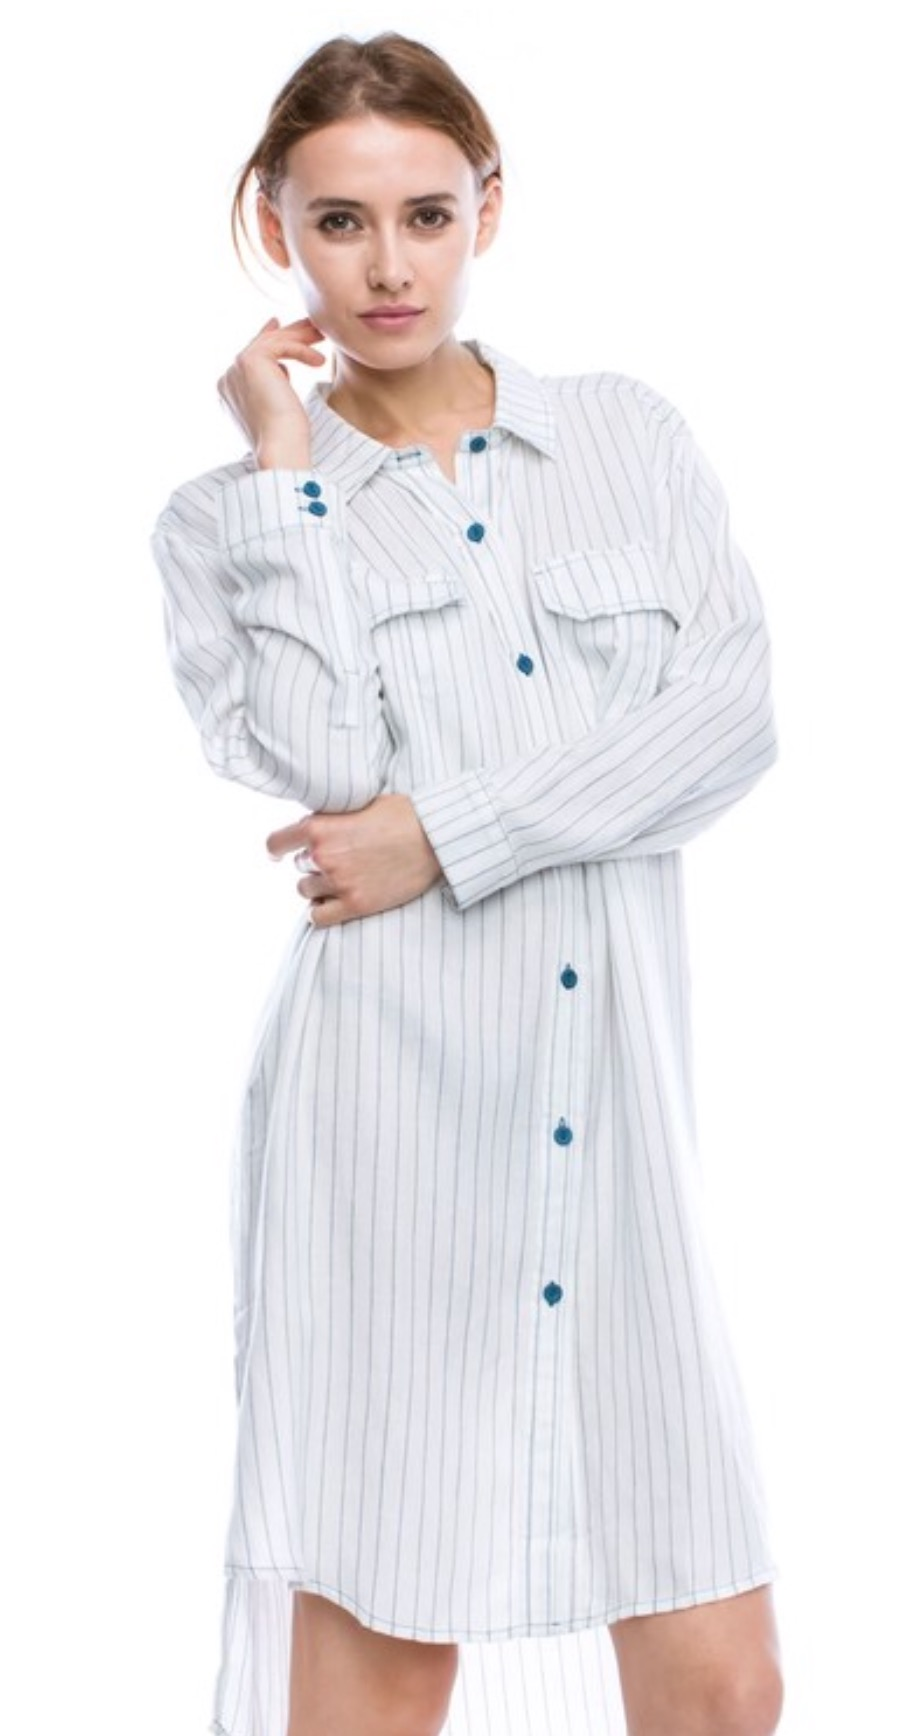 8c744c58ae3d81 ... Single Button Source · Long Sleeve Striped Shirt Dress W High Low Hem  Five Girls Fashion